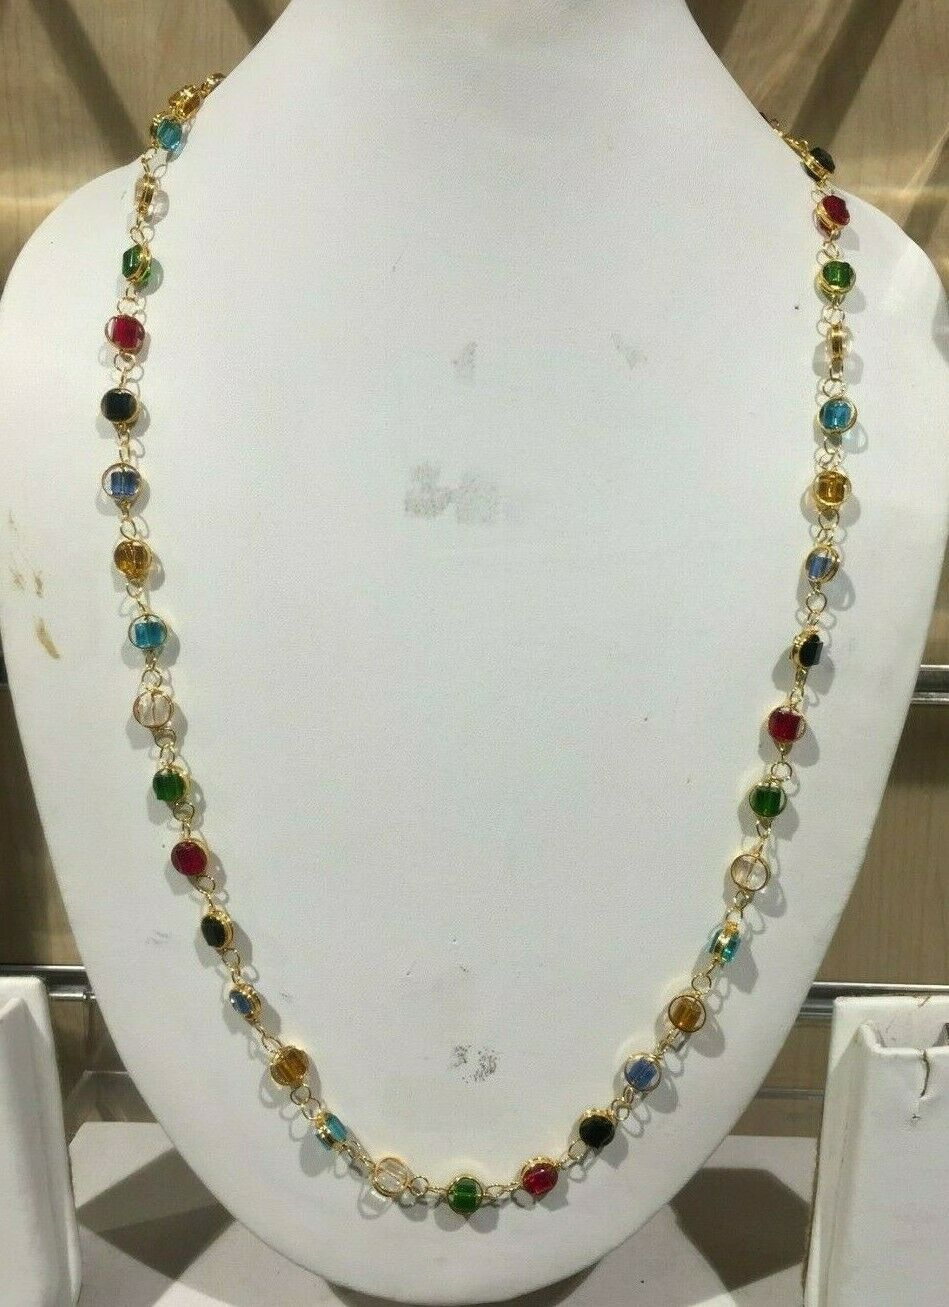 Jewellery - New Golden With Multi Colored Beaded Chain Indian African Jewellery Necklace